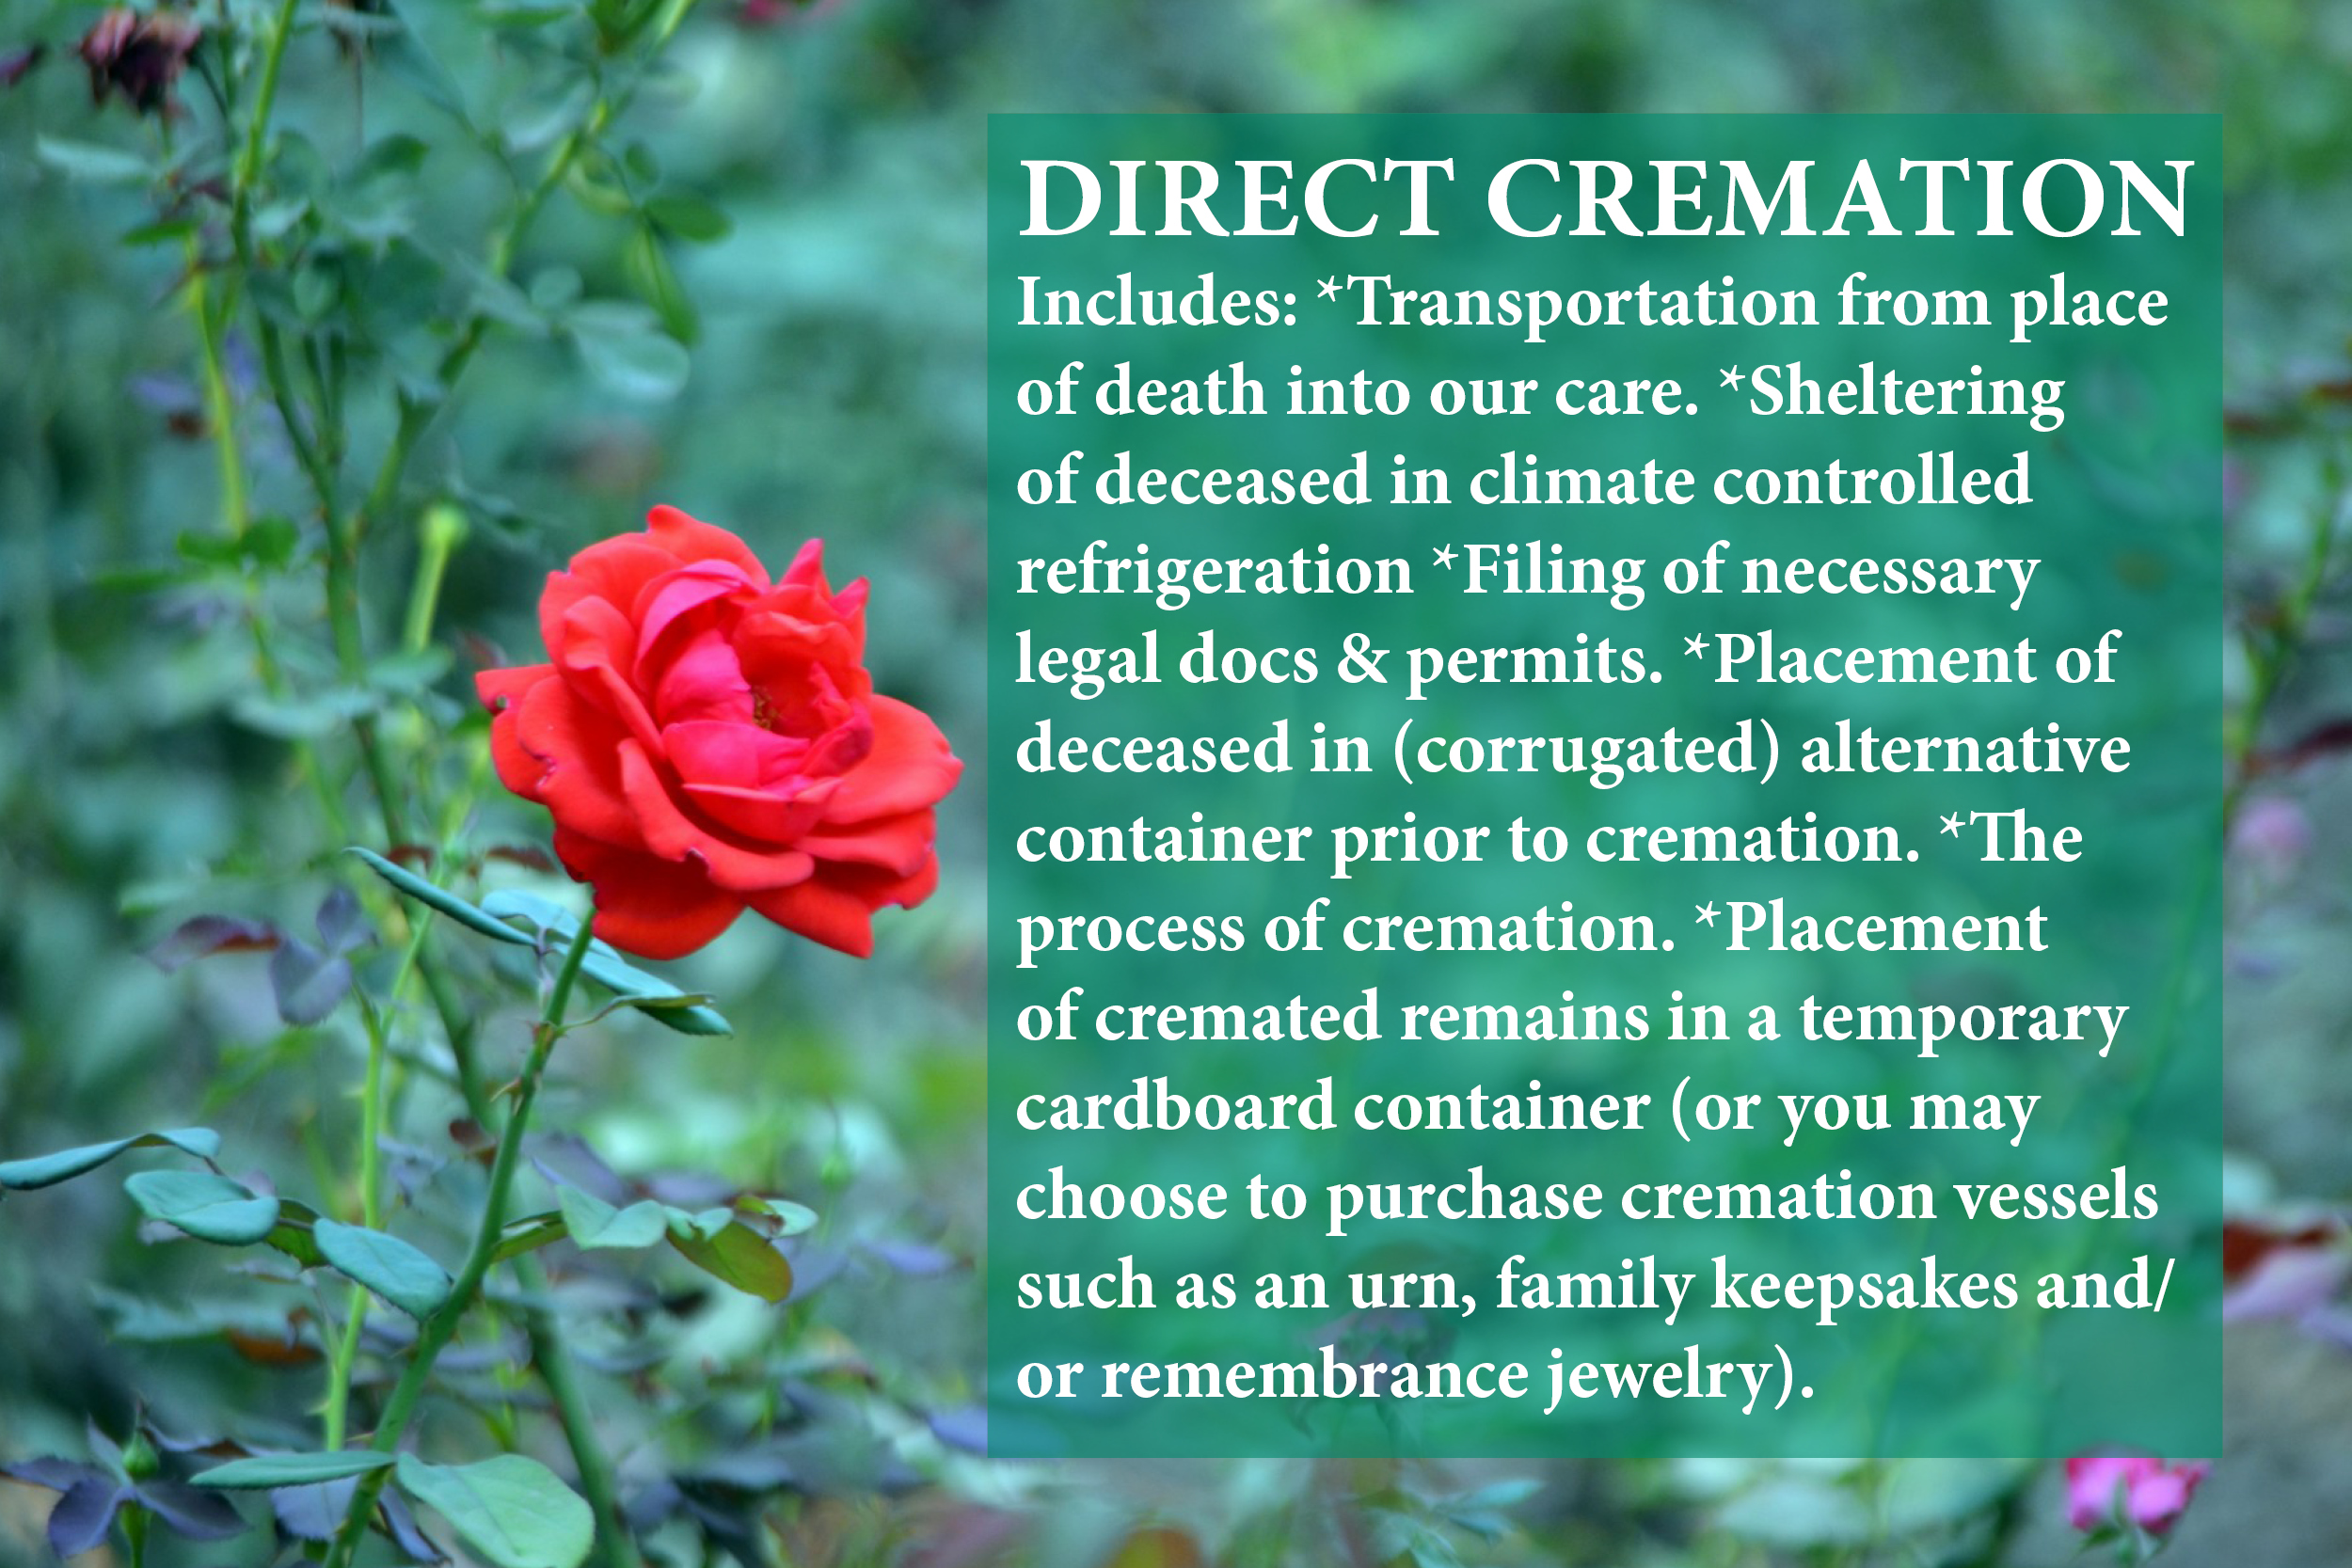 Direct cremation